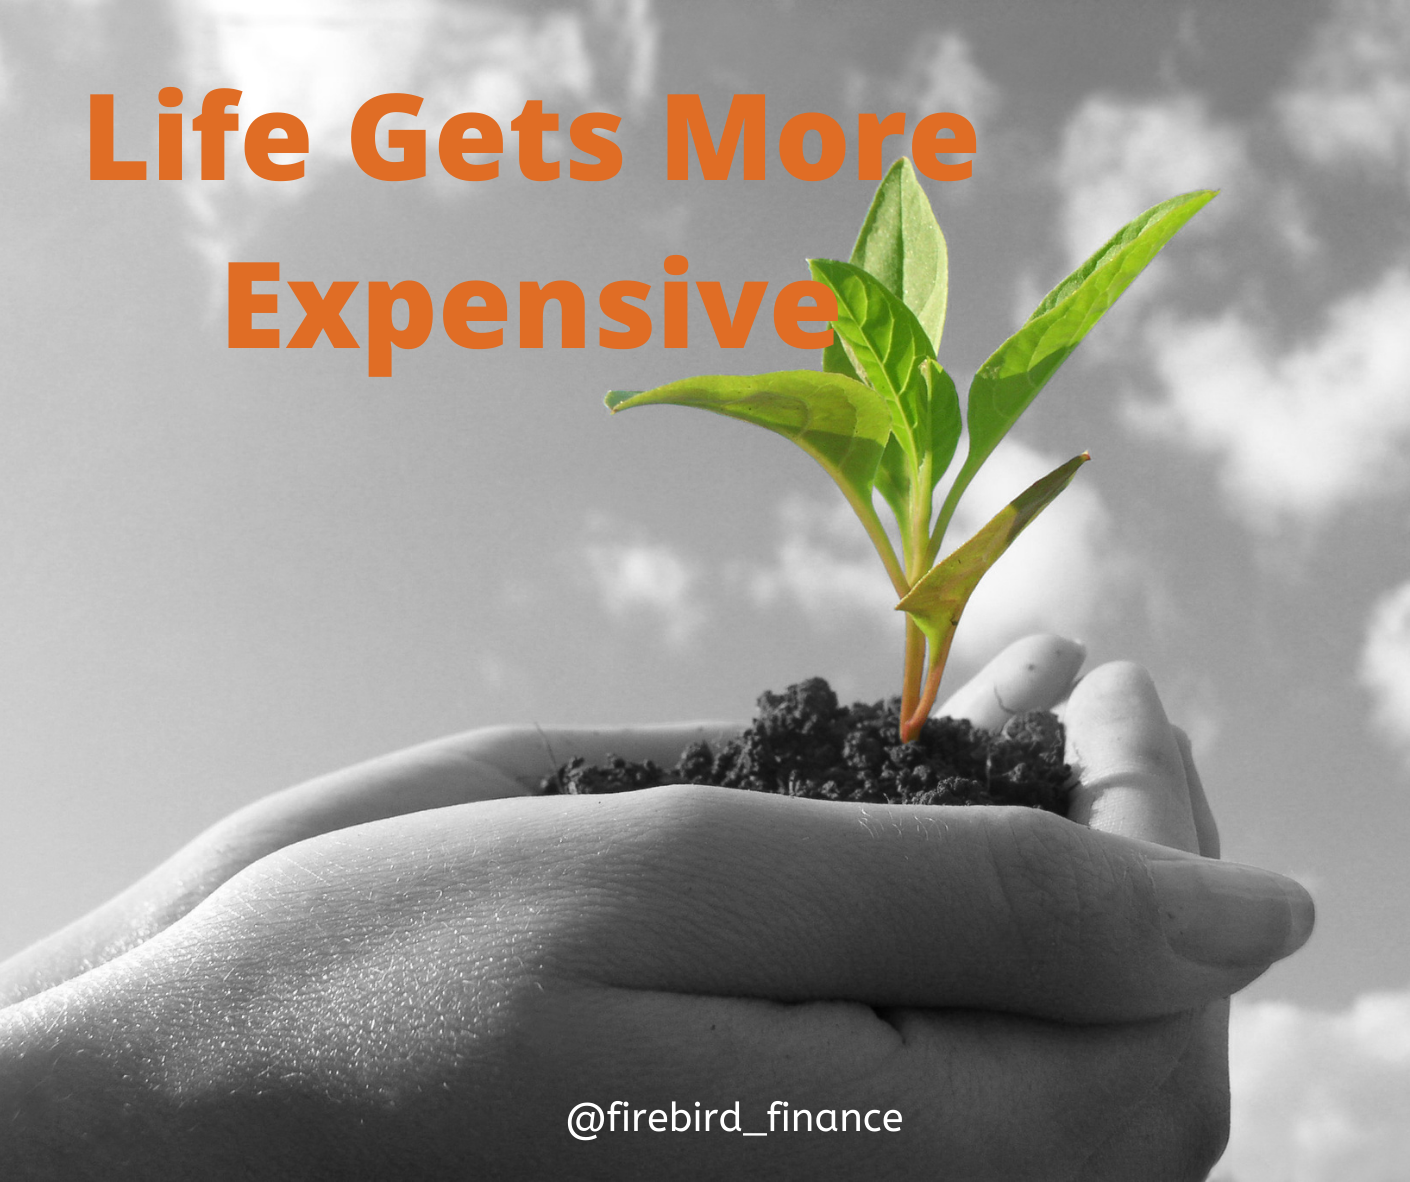 Life Gets More Expensive